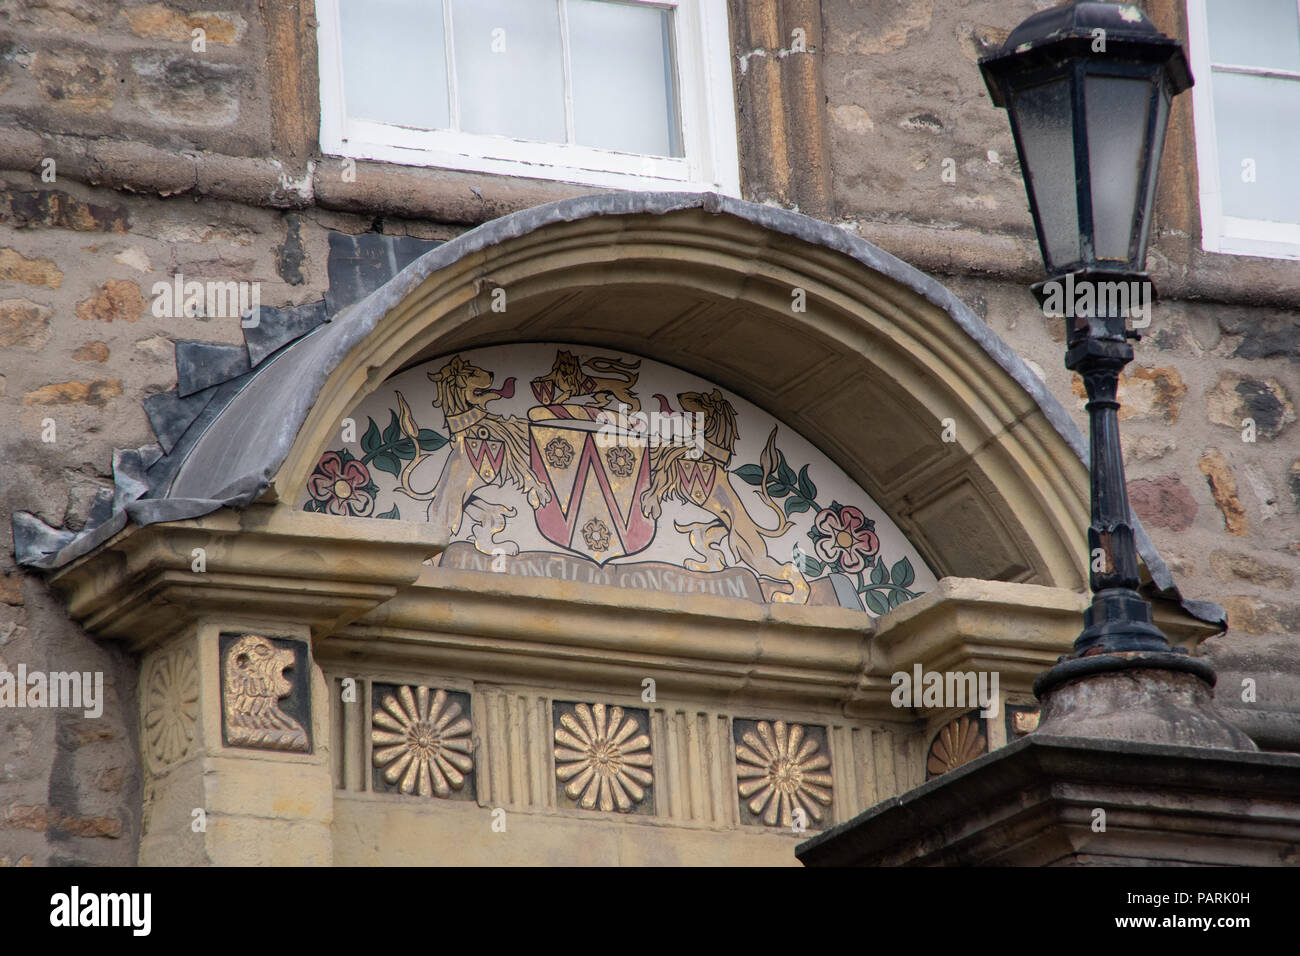 Coat of arms above the door of the building next to the Priory and Judges Lodgings Lancaster city centre around the castle area Stock Photo